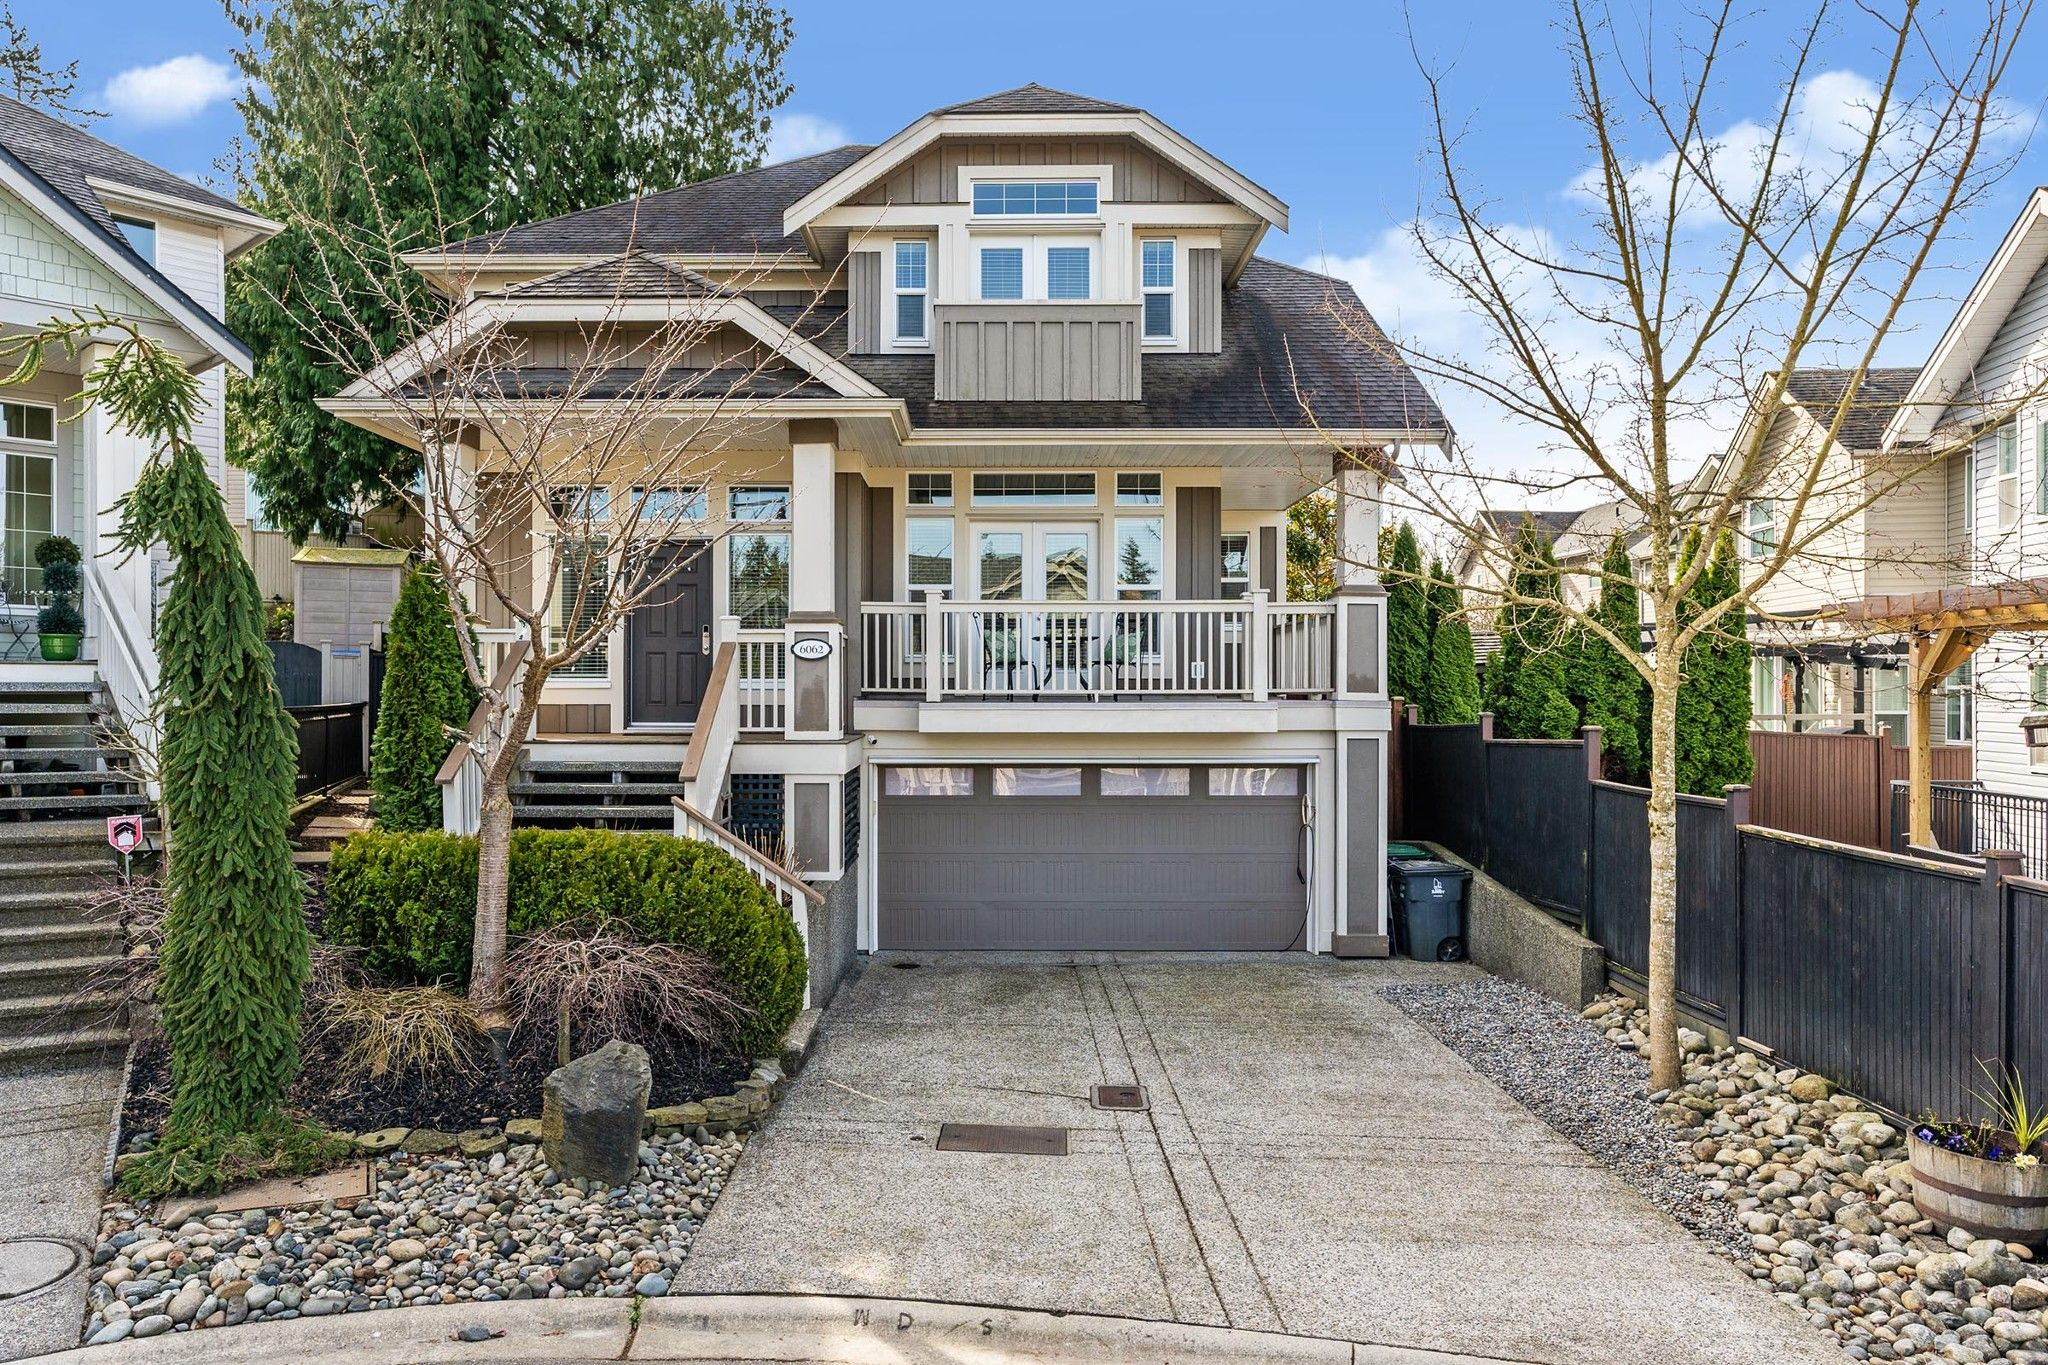 """Main Photo: 6062 163A Street in Surrey: Cloverdale BC House for sale in """"West Cloverdale"""" (Cloverdale)  : MLS®# R2551897"""